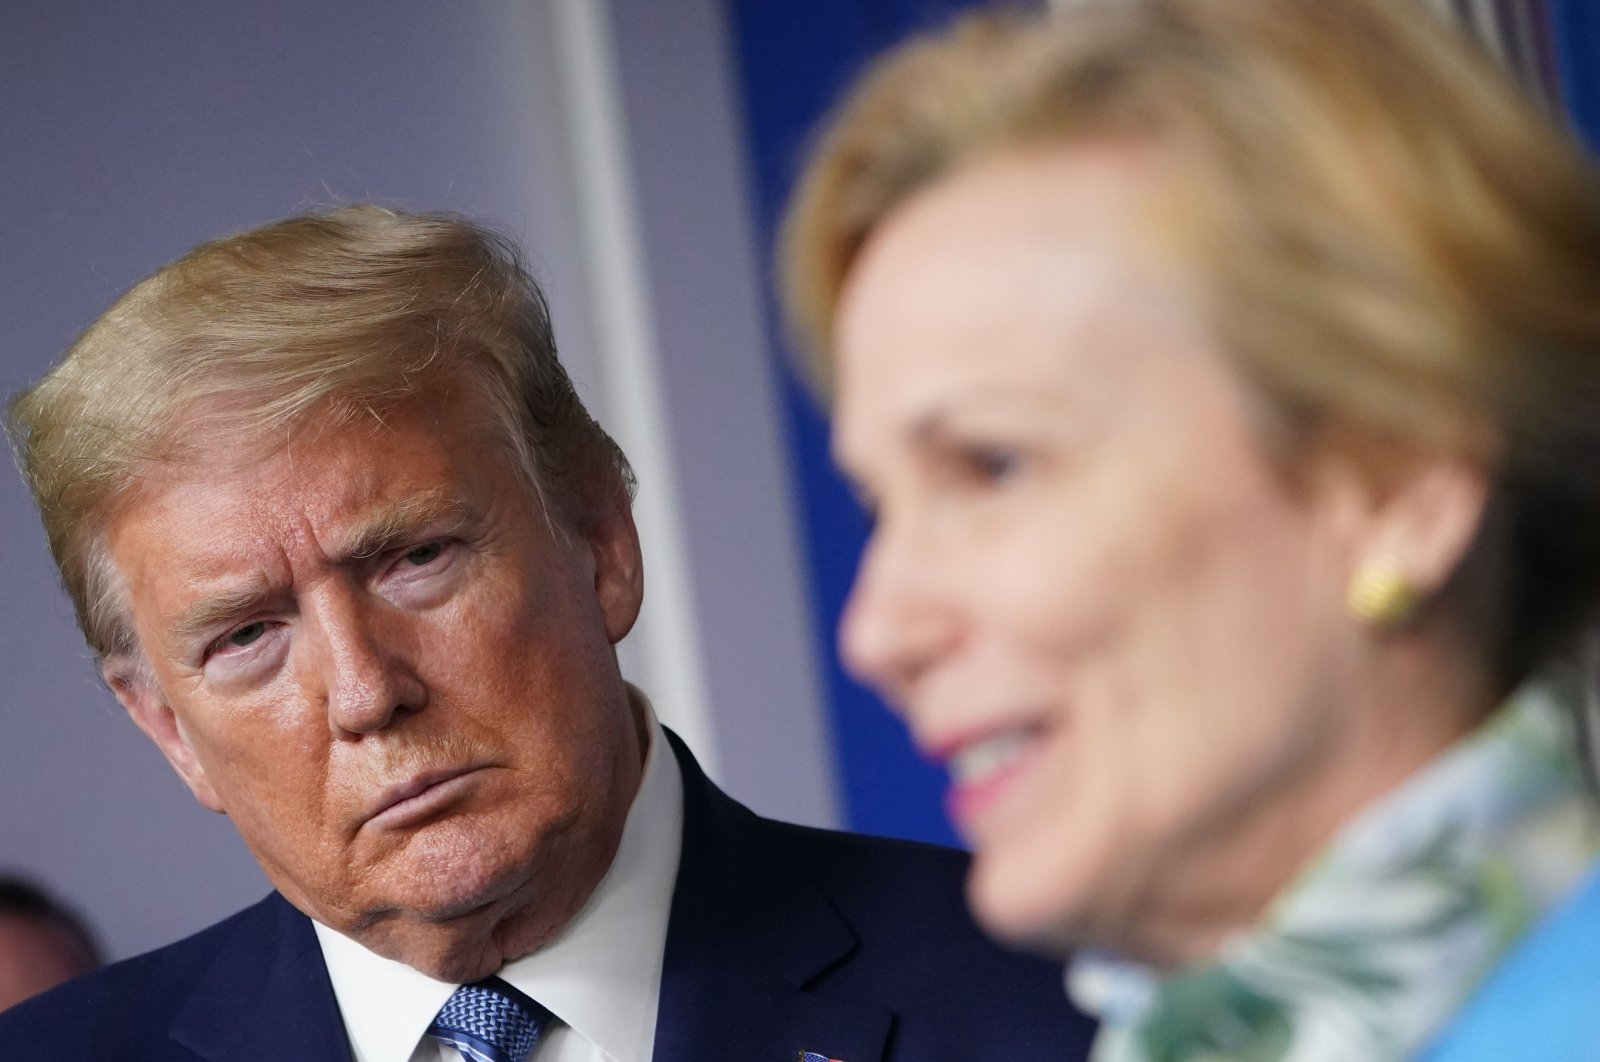 Response coordinator for White House Coronavirus Task Force Deborah Birx speaks as U.S. President Donald Trump listens during the daily briefing on the novel coronavirus in the Brady Briefing Room of the White House in Washington, D.C., U.S., April 21, 2020. (AFP Photo)